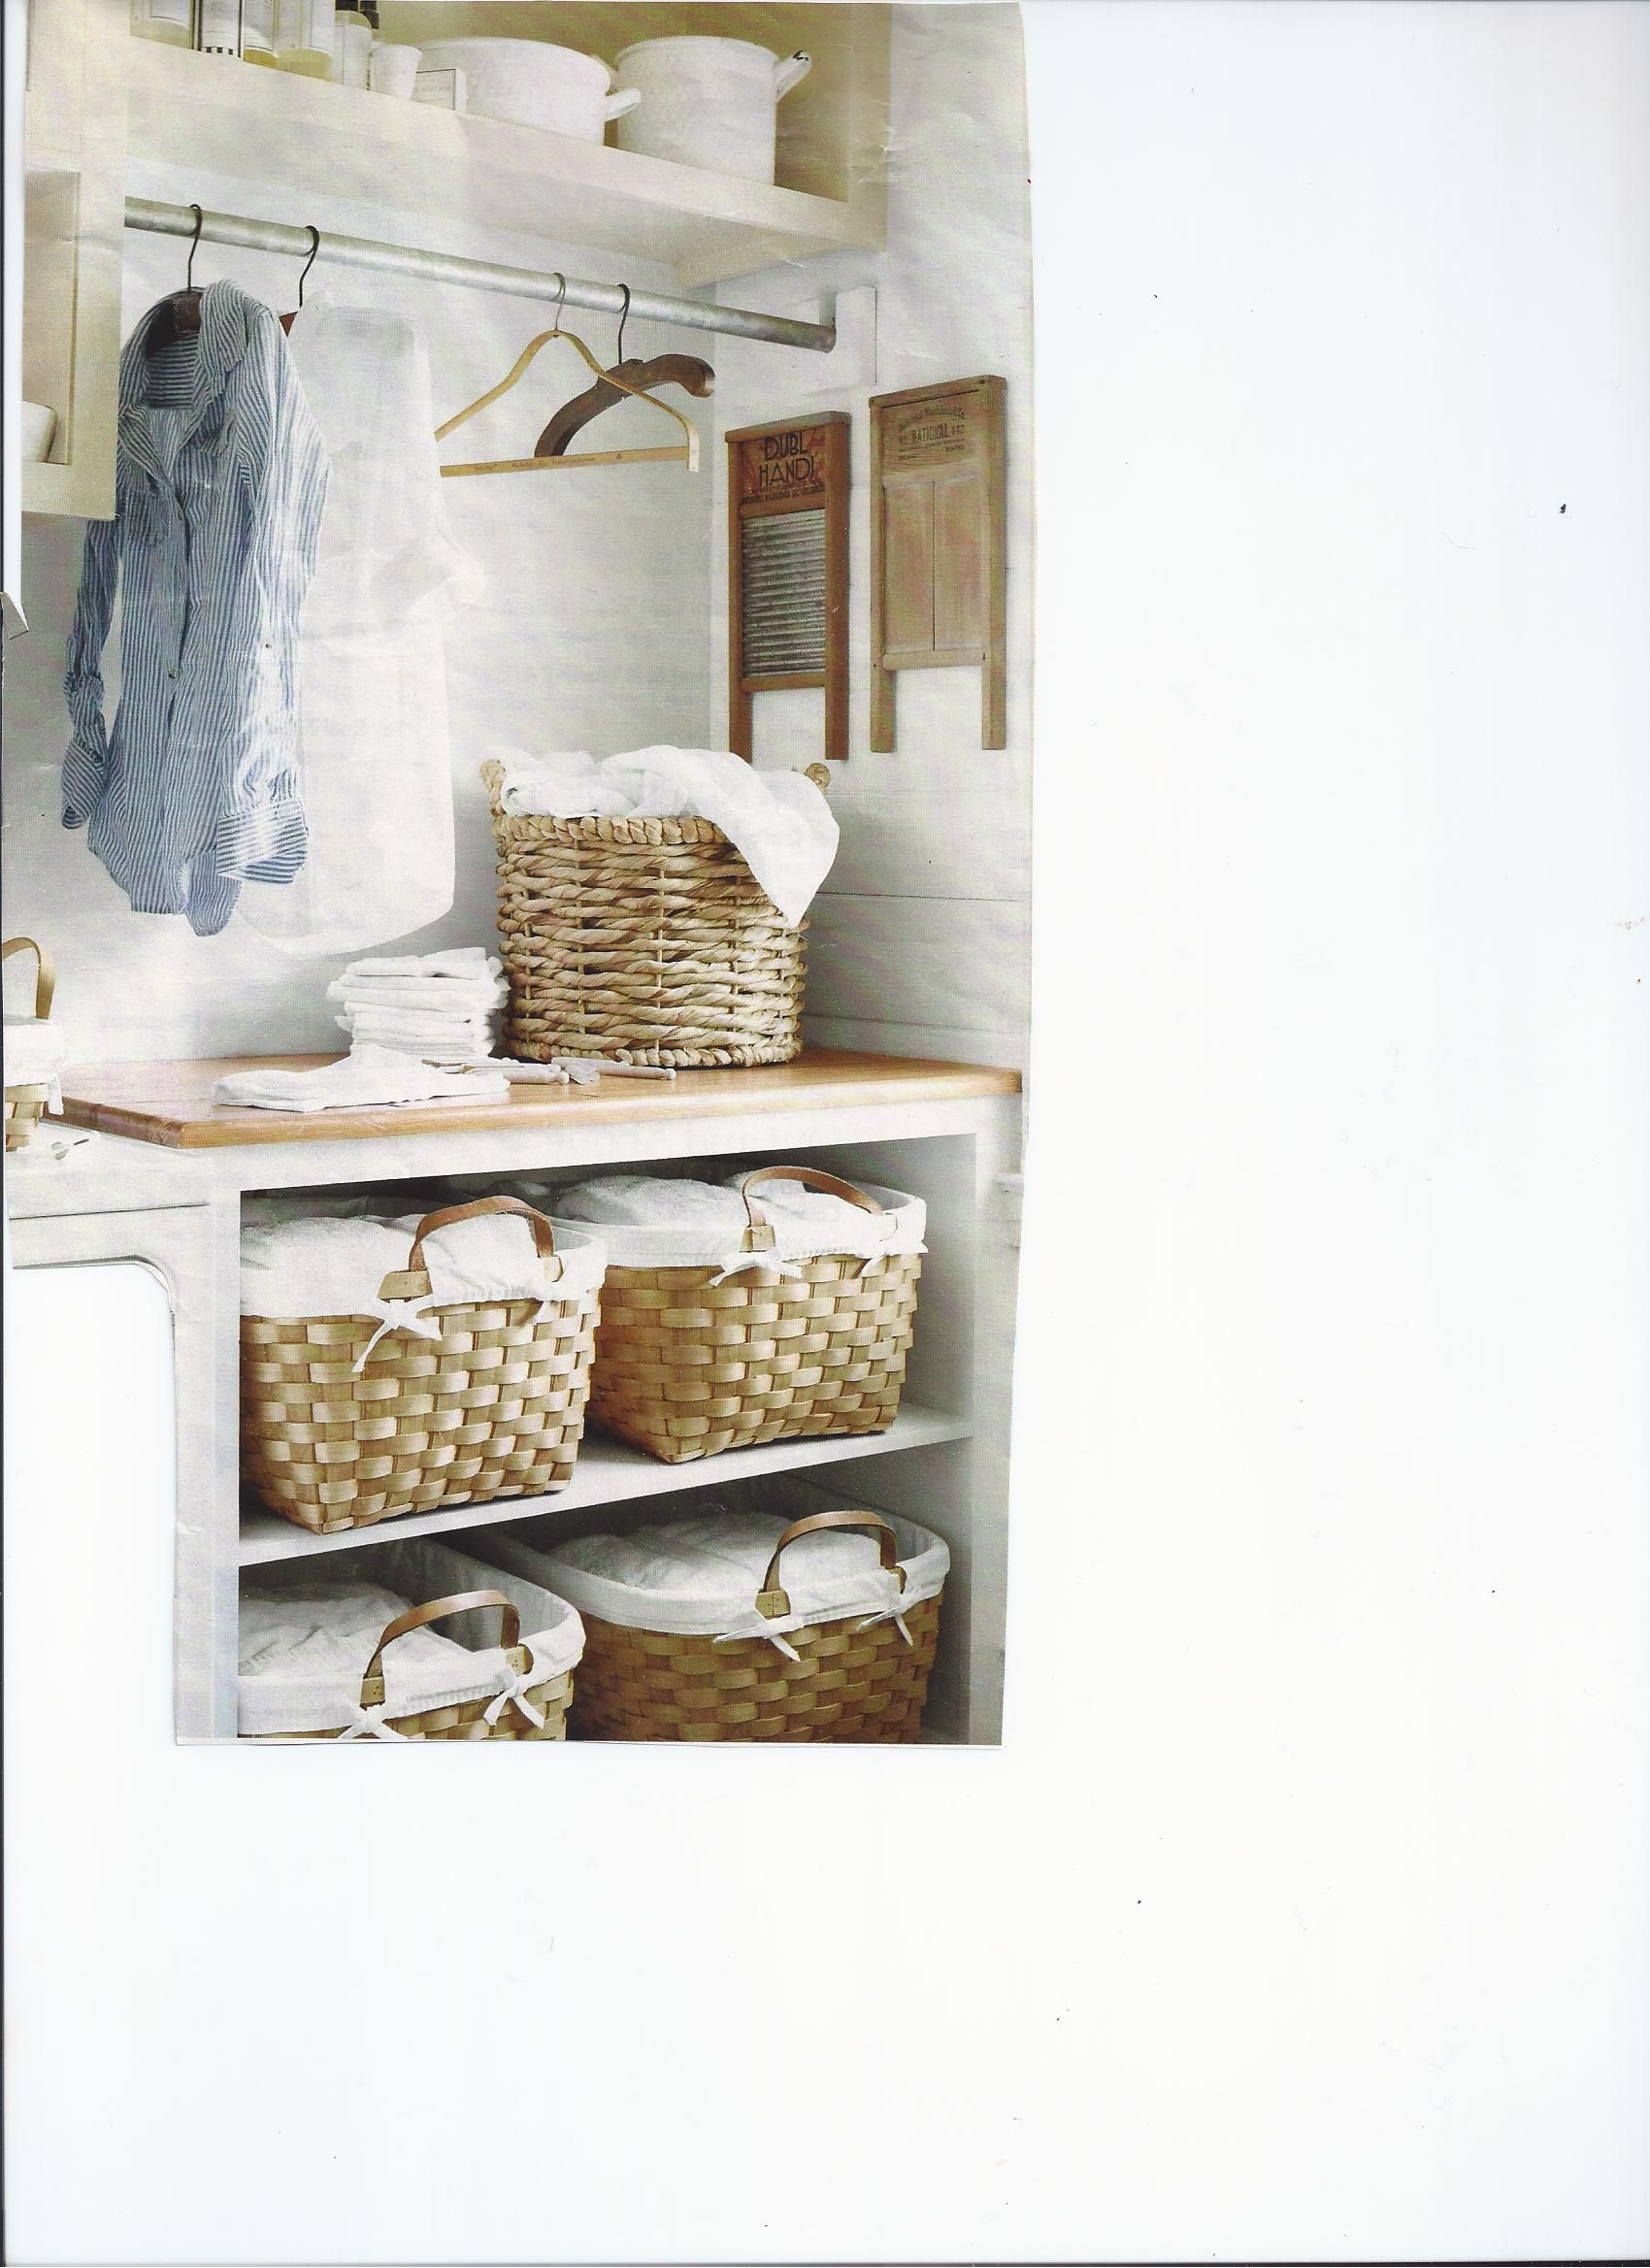 Baskets and bar to hand ironing